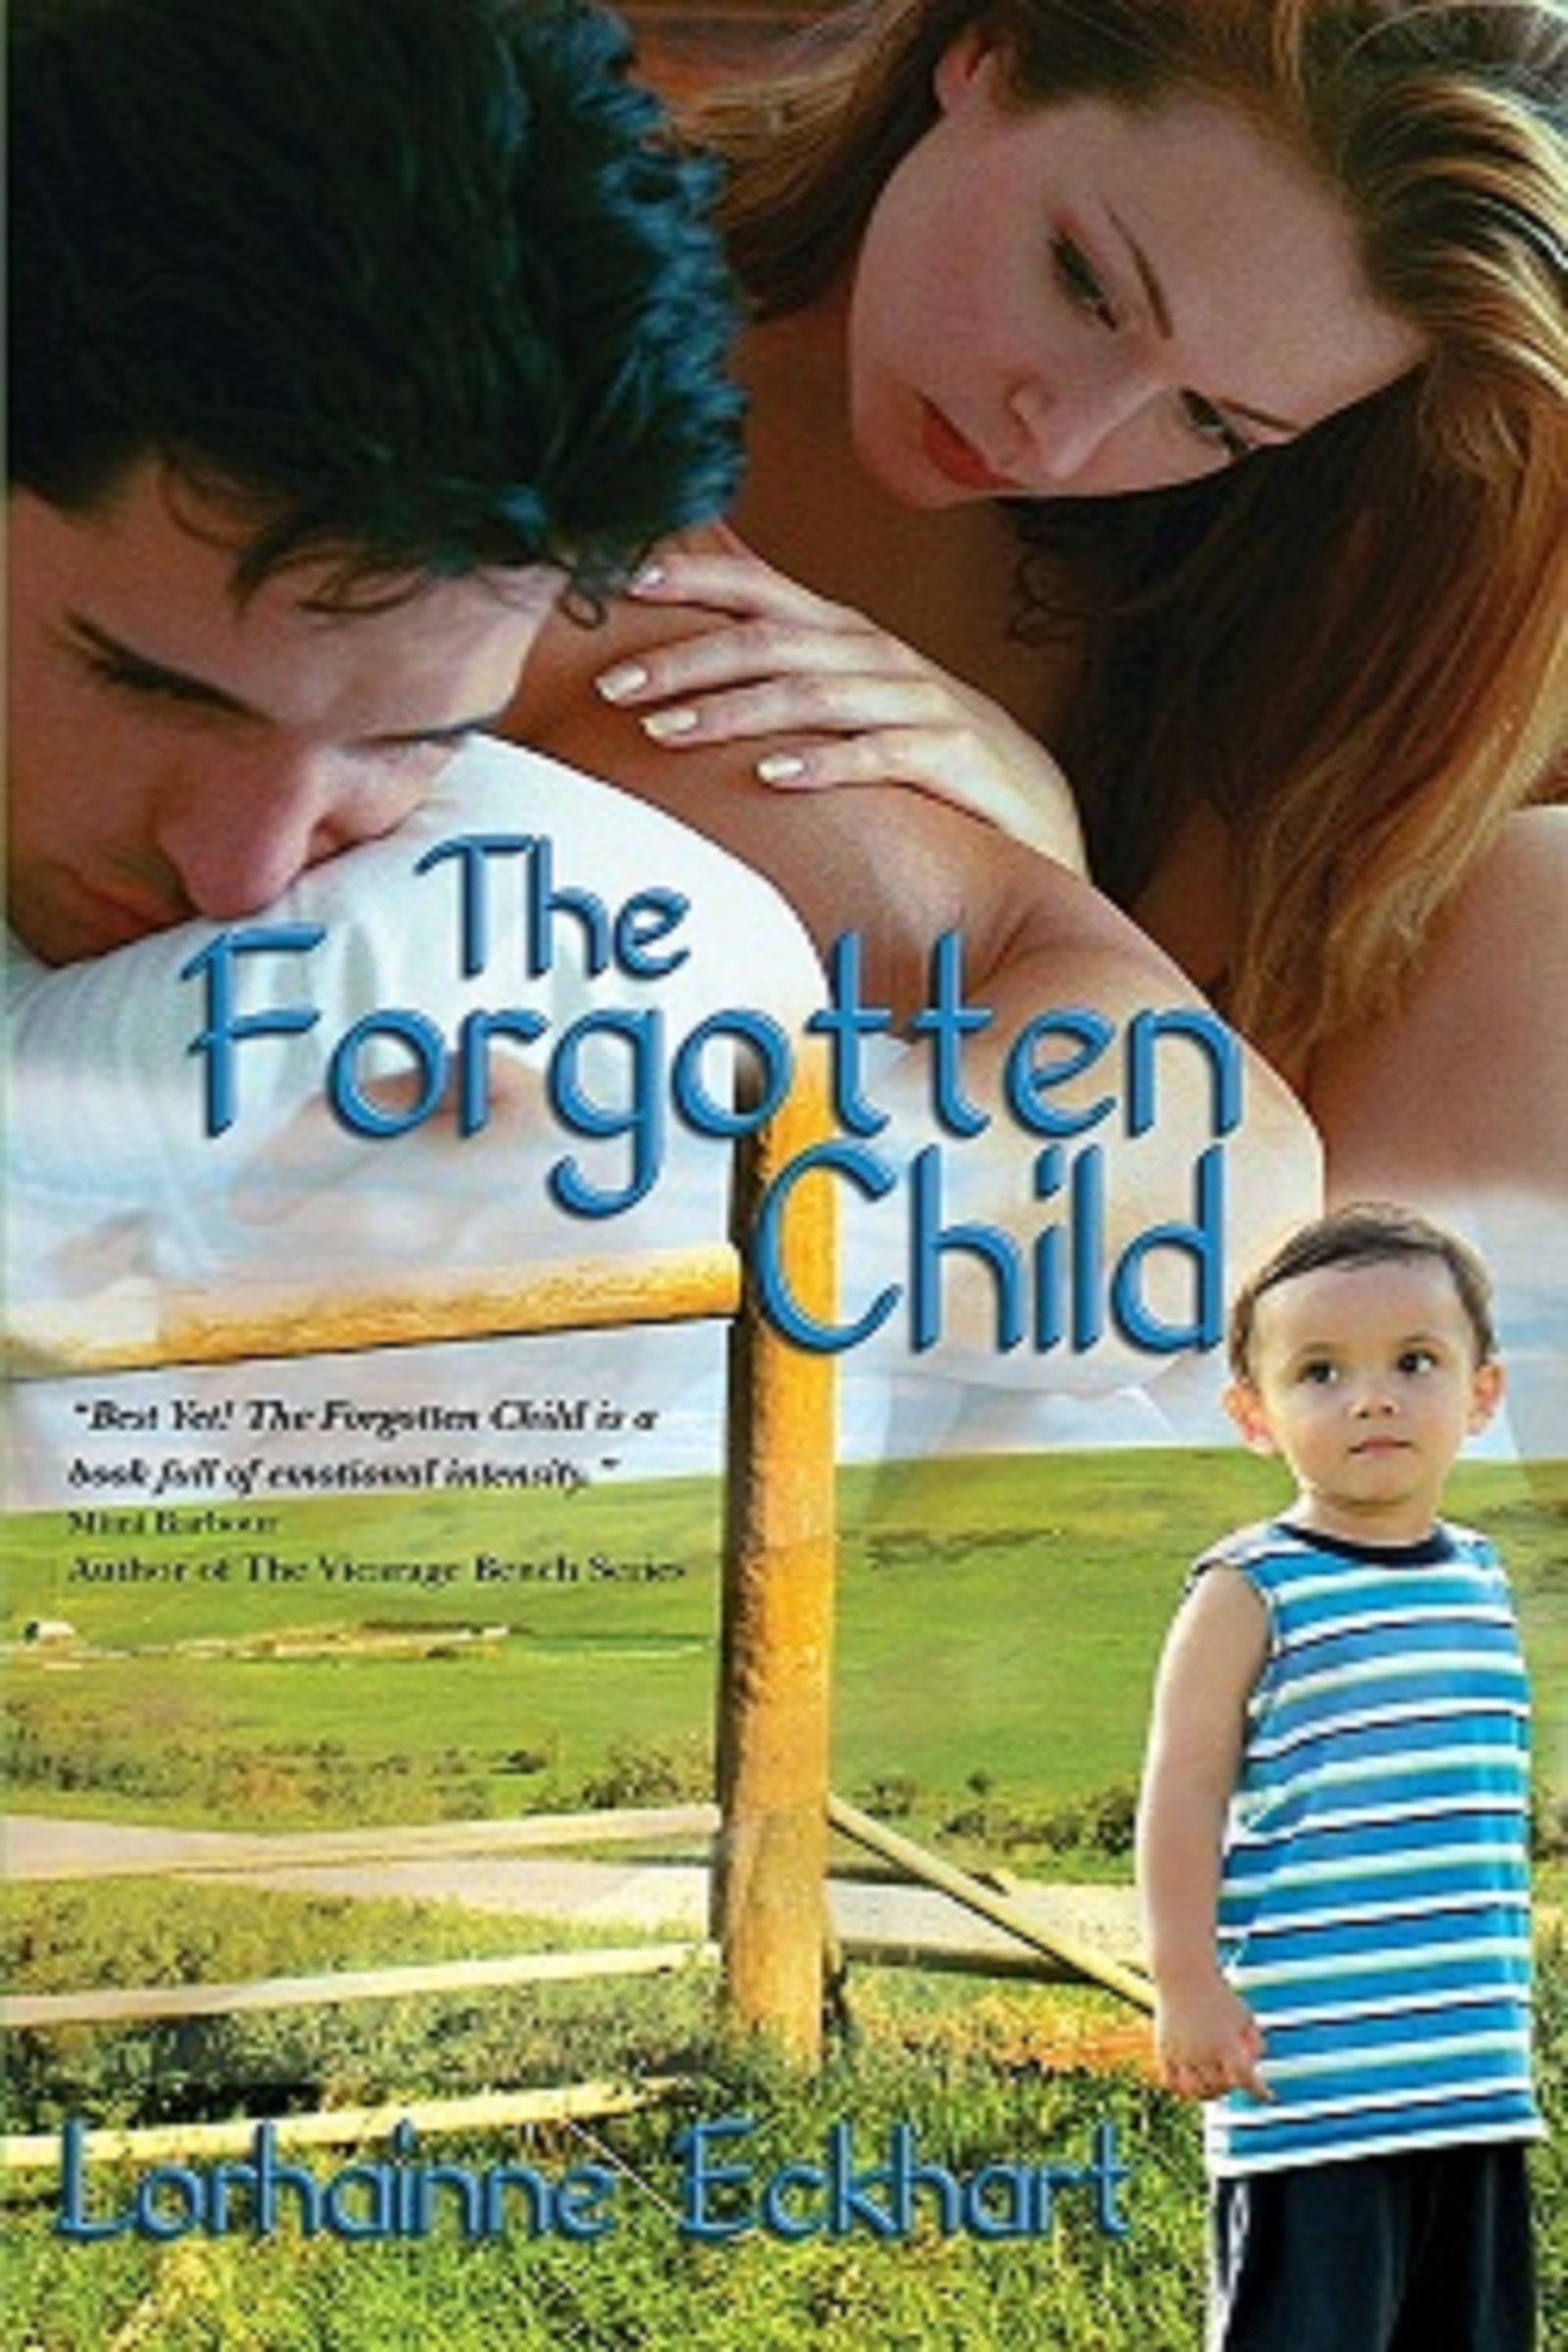 the-forgotten-child-cover-tilted1600-c18591b55920a07cee82d83a536b8c5439f596c7